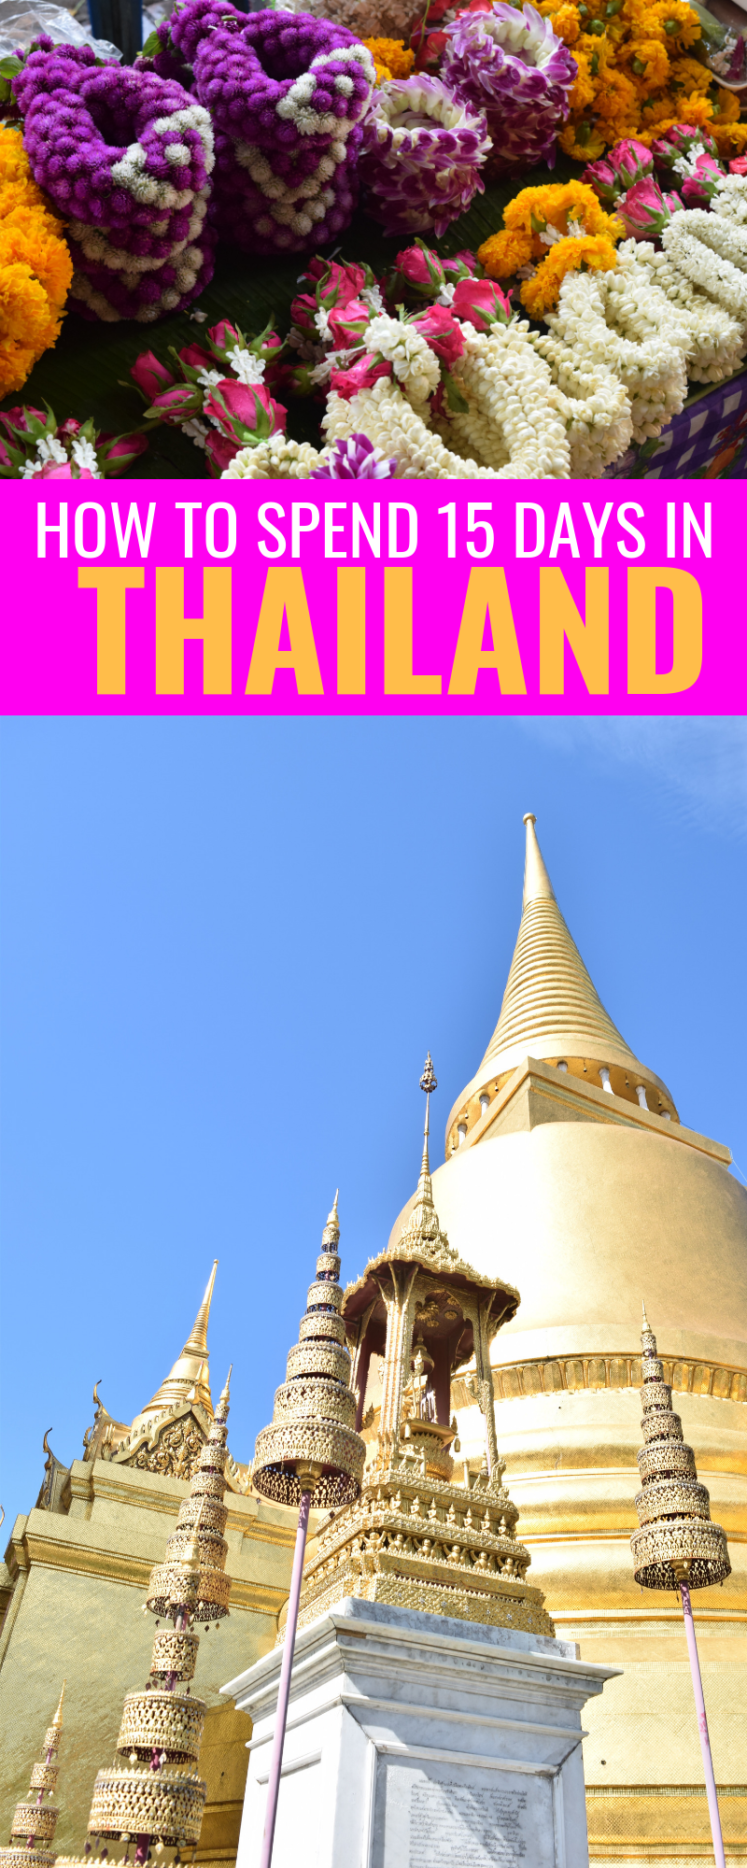 How To Spend 15 Days In Thailand